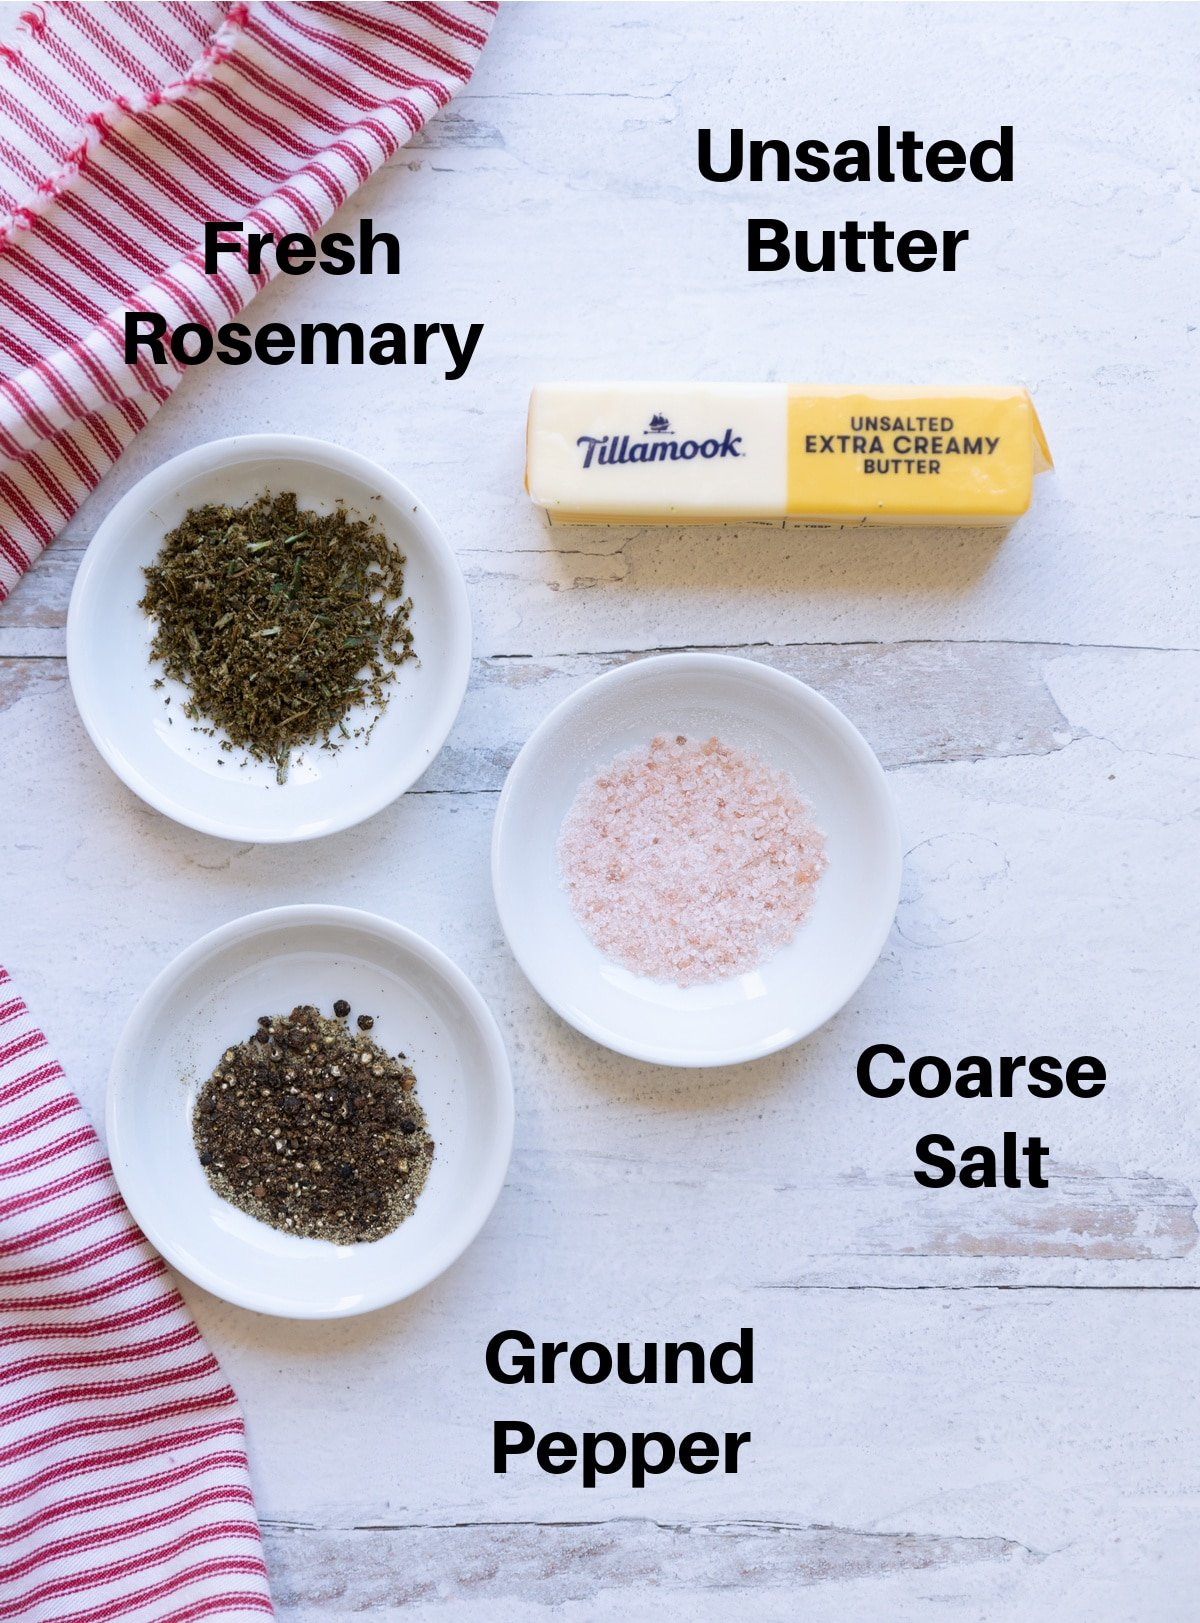 Ingredients on a table to make rosemary flavored butter.